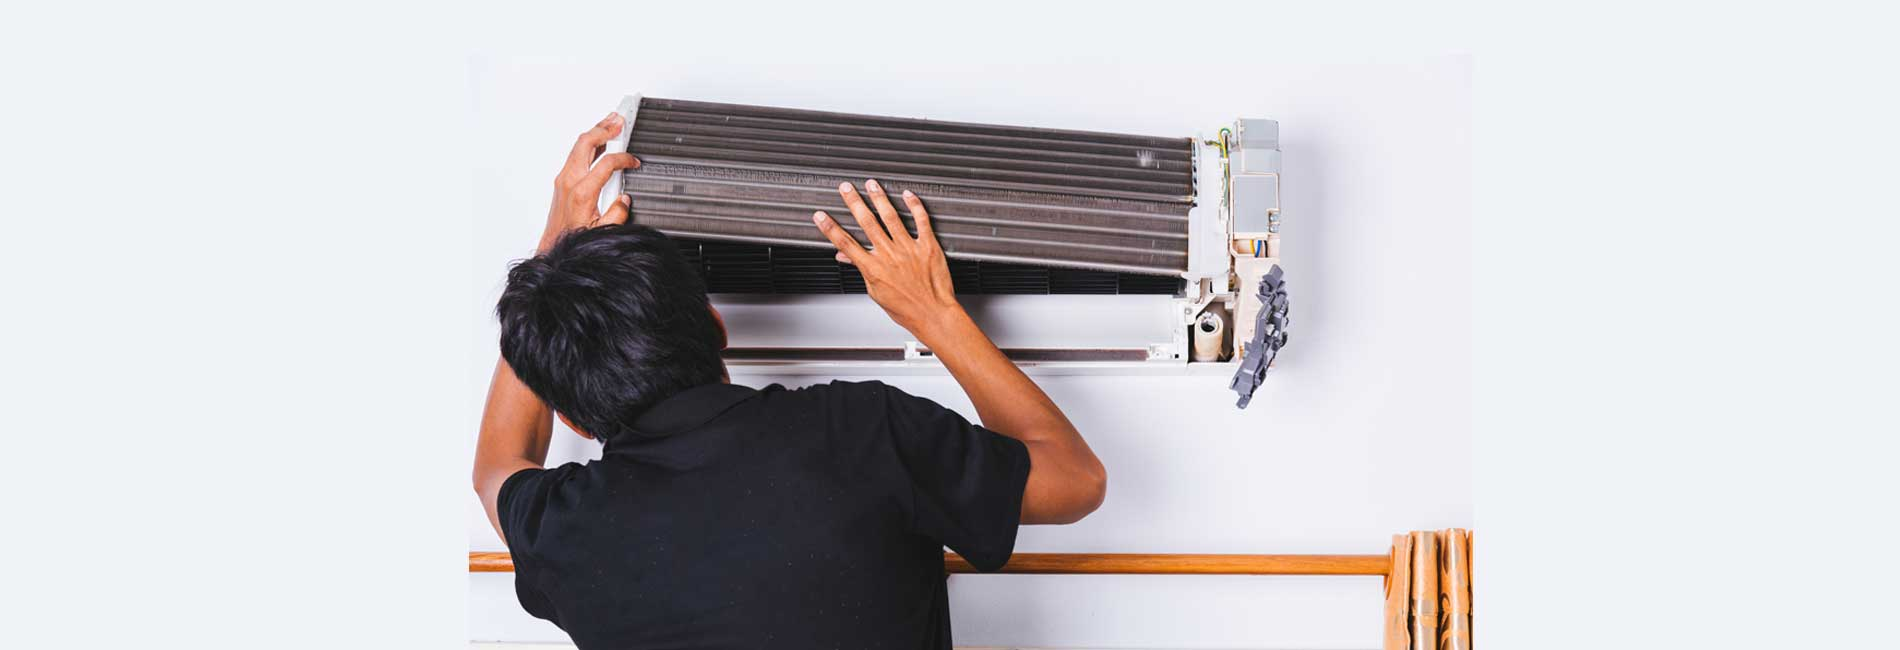 Panasonic AC Repair in Saidapet west